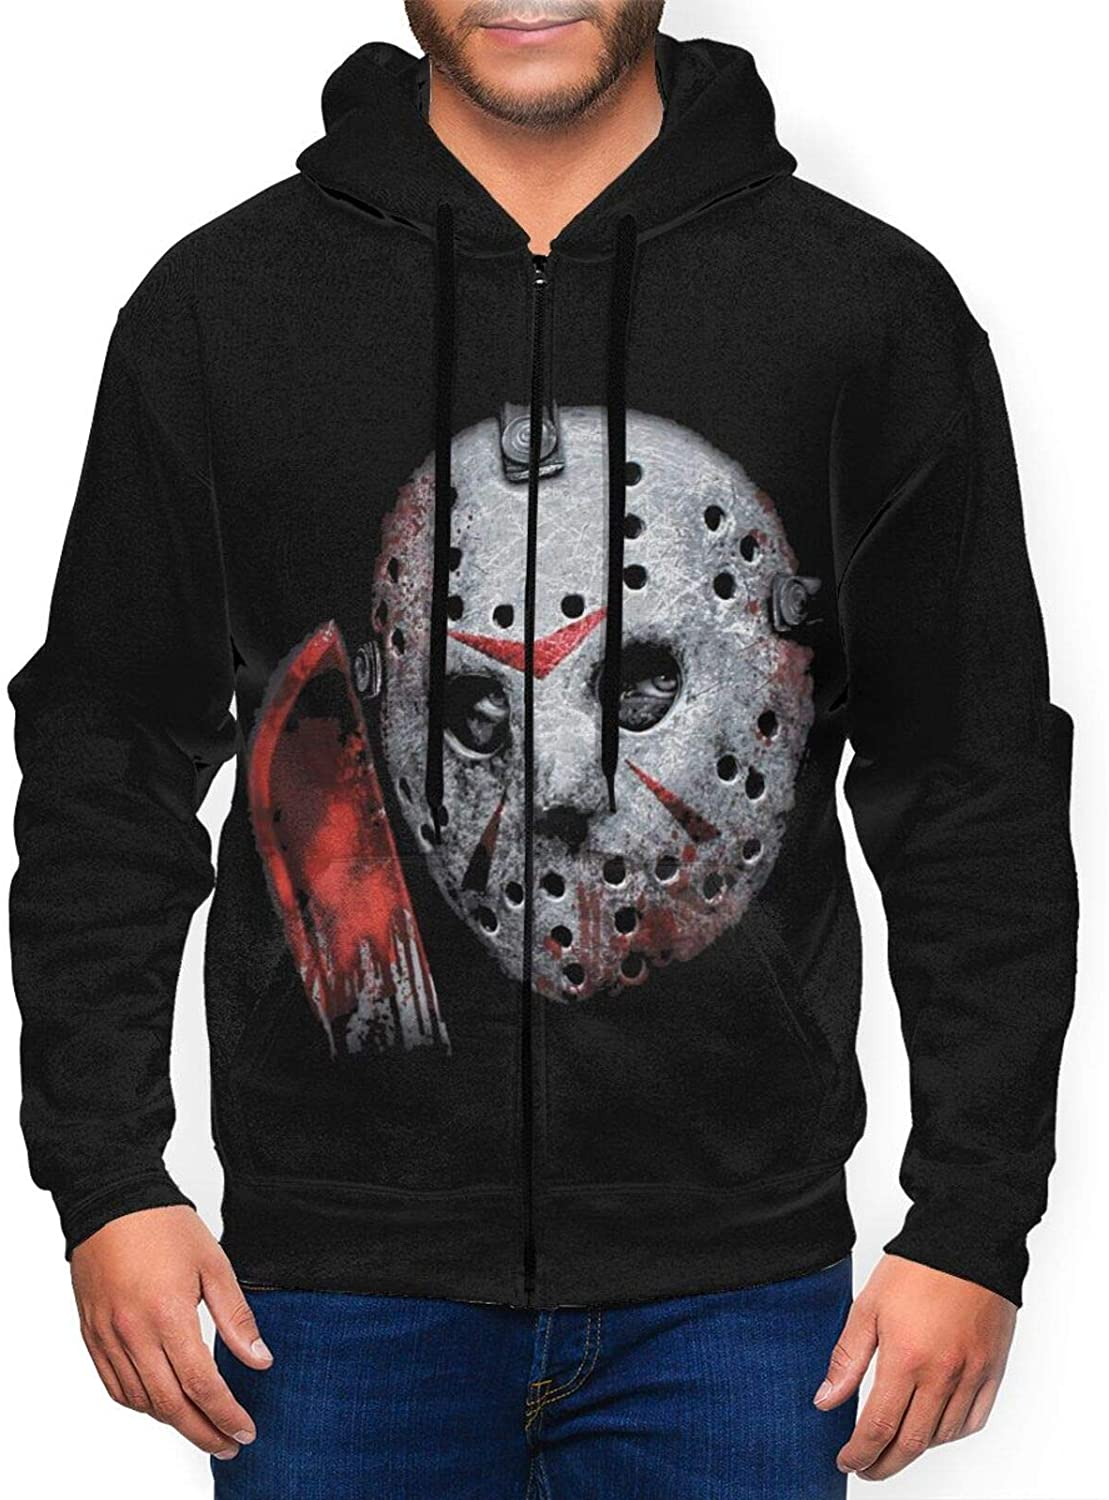 Startingpoint126 Men Friday The 13th Jason Voorhees Airbrush Casual Comfortable Hooded Sweater